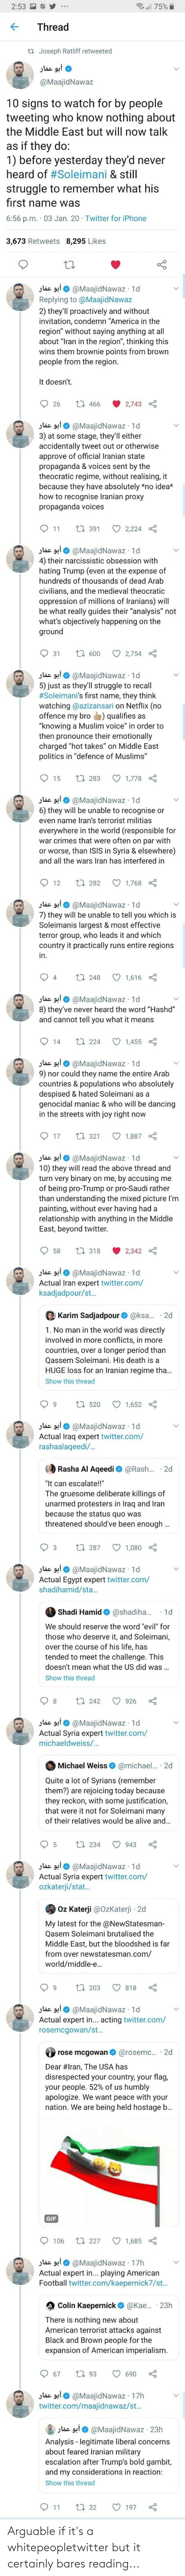 "Civilians: ll 75%  2:53  Thread  ta Joseph Ratliff retweeted  أبو عمار  @MaajidNawaz  10 signs to watch for by people  tweeting who know nothing about  the Middle East but will now talk  as if they do:  1) before yesterday they'd never  heard of #Soleimani & still  struggle to remember what his  fırst name was  6:56 p.m. · 03 Jan. 20 Twitter for iPhone  3,673 Retweets 8,295 Likes  jlác sại 0 @MaajidNawaz · 1d  Replying to @MaajidNawaz  2) they'll proactively and without  invitation, condemn ""America in the  region"" without saying anything at all  about ""Iran in the region"", thinking this  wins them brownie points from brown  people from the region.  It doesn't.  17 466  26  2,743  Jlác 9i O @MaajidNawaz · 1d  3) at some stage, they'll either  accidentally tweet out or otherwise  approve of official Iranian state  propaganda & voices sent by the  theocratic regime, without realising, it  because they have absolutely *no idea*  how to recognise Iranian proxy  propaganda voices  17 391  2,224  11  jlác 9iO @MaajidNawaz · 1d  4) their narcissistic obsession with  hating Trump (even at the expense of  hundreds of thousands of dead Arab  civilians, and the medieval theocratic  oppression of millions of Iranians) will  be what really guides their ""analysis"" not  what's objectively happening on the  ground  17 600  31  2,754  jlác 910 @MaajidNawaz · 1d  5) just as they'll struggle to recall  #Soleimani's first name, they think  watching @azizansari on Netflix (no  offence my bro  ""knowing a Muslim voice"" in order to  then pronounce their emotionally  charged ""hot takes"" on Middle East  politics in ""defence of Muslims""  qualifies as  t7 283  15  1,778  @MaajidNawaz · 1d  6) they will be unable to recognise or  أبو عمار  even name Iran's terrorist militias  everywhere in the world (responsible for  war crimes that were often on par with  or worse, than ISIS in Syria & elsewhere)  and all the wars Iran has interfered in  O 1,768  27 282  12  slác gi0 @MaajidNawaz · 1d  7) they will be unable to tell you which is  Soleimanis largest & most effective  terror group, who leads it and which  country it practically runs entire regions  in.  t7 248  1,616  glác 9i O @MaajidNawaz · 1d  8) they've never heard the word ""Hashd""  and cannot tell you what it means  27 224  14  1,455  jlác 9i O @MaajidNawaz 1d  9) nor could they name the entire Arab  countries & populations who absolutely  despised & hated Soleimani as a  genocidal maniac & who will be dancing  in the streets with joy right now  27 321  1,887  17  jlác 9i O @MaajidNawaz 1d  10) they will read the above thread and  turn very binary on me, by accusing me  of being pro-Trump or pro-Saudi rather  than understanding the mixed picture I'm  painting, without ever having had a  relationship with anything in the Middle  East, beyond twitter.  t7 318  2,342  58  Jlác 9i O @MaajidNawaz · 1d  Actual Iran expert twitter.com/  ksadjadpour/st.  Karim Sadjadpour O @ksa.· 2d  1. No man in the world was directly  involved in more conflicts, in more  countries, over a longer period than  Qassem Soleimani. His death is a  HUGE loss for an Iranian regime tha...  Show this thread  17 520  9.  1,652  أبو عمار  Actual Iraq expert twitter.com/  rashaalaqeedi/.  @MaajidNawaz 1d  Rasha Al Aqeedi  @Rash.  · 2d  ""It can escalate!!""  The gruesome deliberate killings of  unarmed protesters in Iraq and Iran  because the status quo was  threatened should've been enough .  17 287  1,080  jlác 91 O @MaajidNawaz 1d  Actual Egypt expert twitter.com/  shadihamid/sta.  Shadi Hamid  @shadiha.  • 1d  We should reserve the word ""evil"" for  those who deserve it, and Soleimani,  over the course of his life, has  tended to meet the challenge. This  doesn't mean what the US did was ...  Show this thread  t7 242  926  Jlác 9i O @MaajidNawaz · 1d  Actual Syria expert twitter.com/  michaeldweiss/..  @michael.. 2d  Michael Weiss  Quite a lot of Syrians (remember  them?) are rejoicing today because  they reckon, with some justification,  that were it not for Soleimani many  of their relatives would be alive and...  17 234  943  أبو عمار  Actual Syria expert twitter.com/  ozkaterji/stat.  @MaajidNawaz · 1d  Oz Katerji @OzKaterji · 2d  My latest for the @NewStatesman-  Qasem Soleimani brutalised the  Middle East, but the bloodshed is far  from over newstatesman.com/  world/middle-e..  t7 203  9.  818  slác 91 O @MaajidNawaz · 1d  Actual expert in.. acting twitter.com/  rosemcgowan/st.  1...  @rosemc. · 2d  rose mcgowan  Dear #Iran, The USA has  disrespected your country, your flag,  your people. 52% of us humbly  apologize. We want peace with your  nation. We are being held hostage b..  GIF  t7 227  106  1,685  jlác 91O @MaajidNawaz 17h  Actual expert in... playing American  Football twitter.com/kaepernick7/st.  Colin Kaepernick  @Kae. · 23h  There is nothing new about  American terrorist attacks against  Black and Brown people for the  expansion of American imperialism.  17 93  67  690  @MaajidNawaz · 17h  twitter.com/maajidnawaz/st.  عمار  أبو عمار  @MaajidNawaz · 23h  Analysis - legitimate liberal concerns  about feared Iranian military  escalation after Trump's bold gambit,  and my considerations in reaction:  Show this thread  17 32  11  197 Arguable if it's a whitepeopletwitter but it certainly bares reading..."